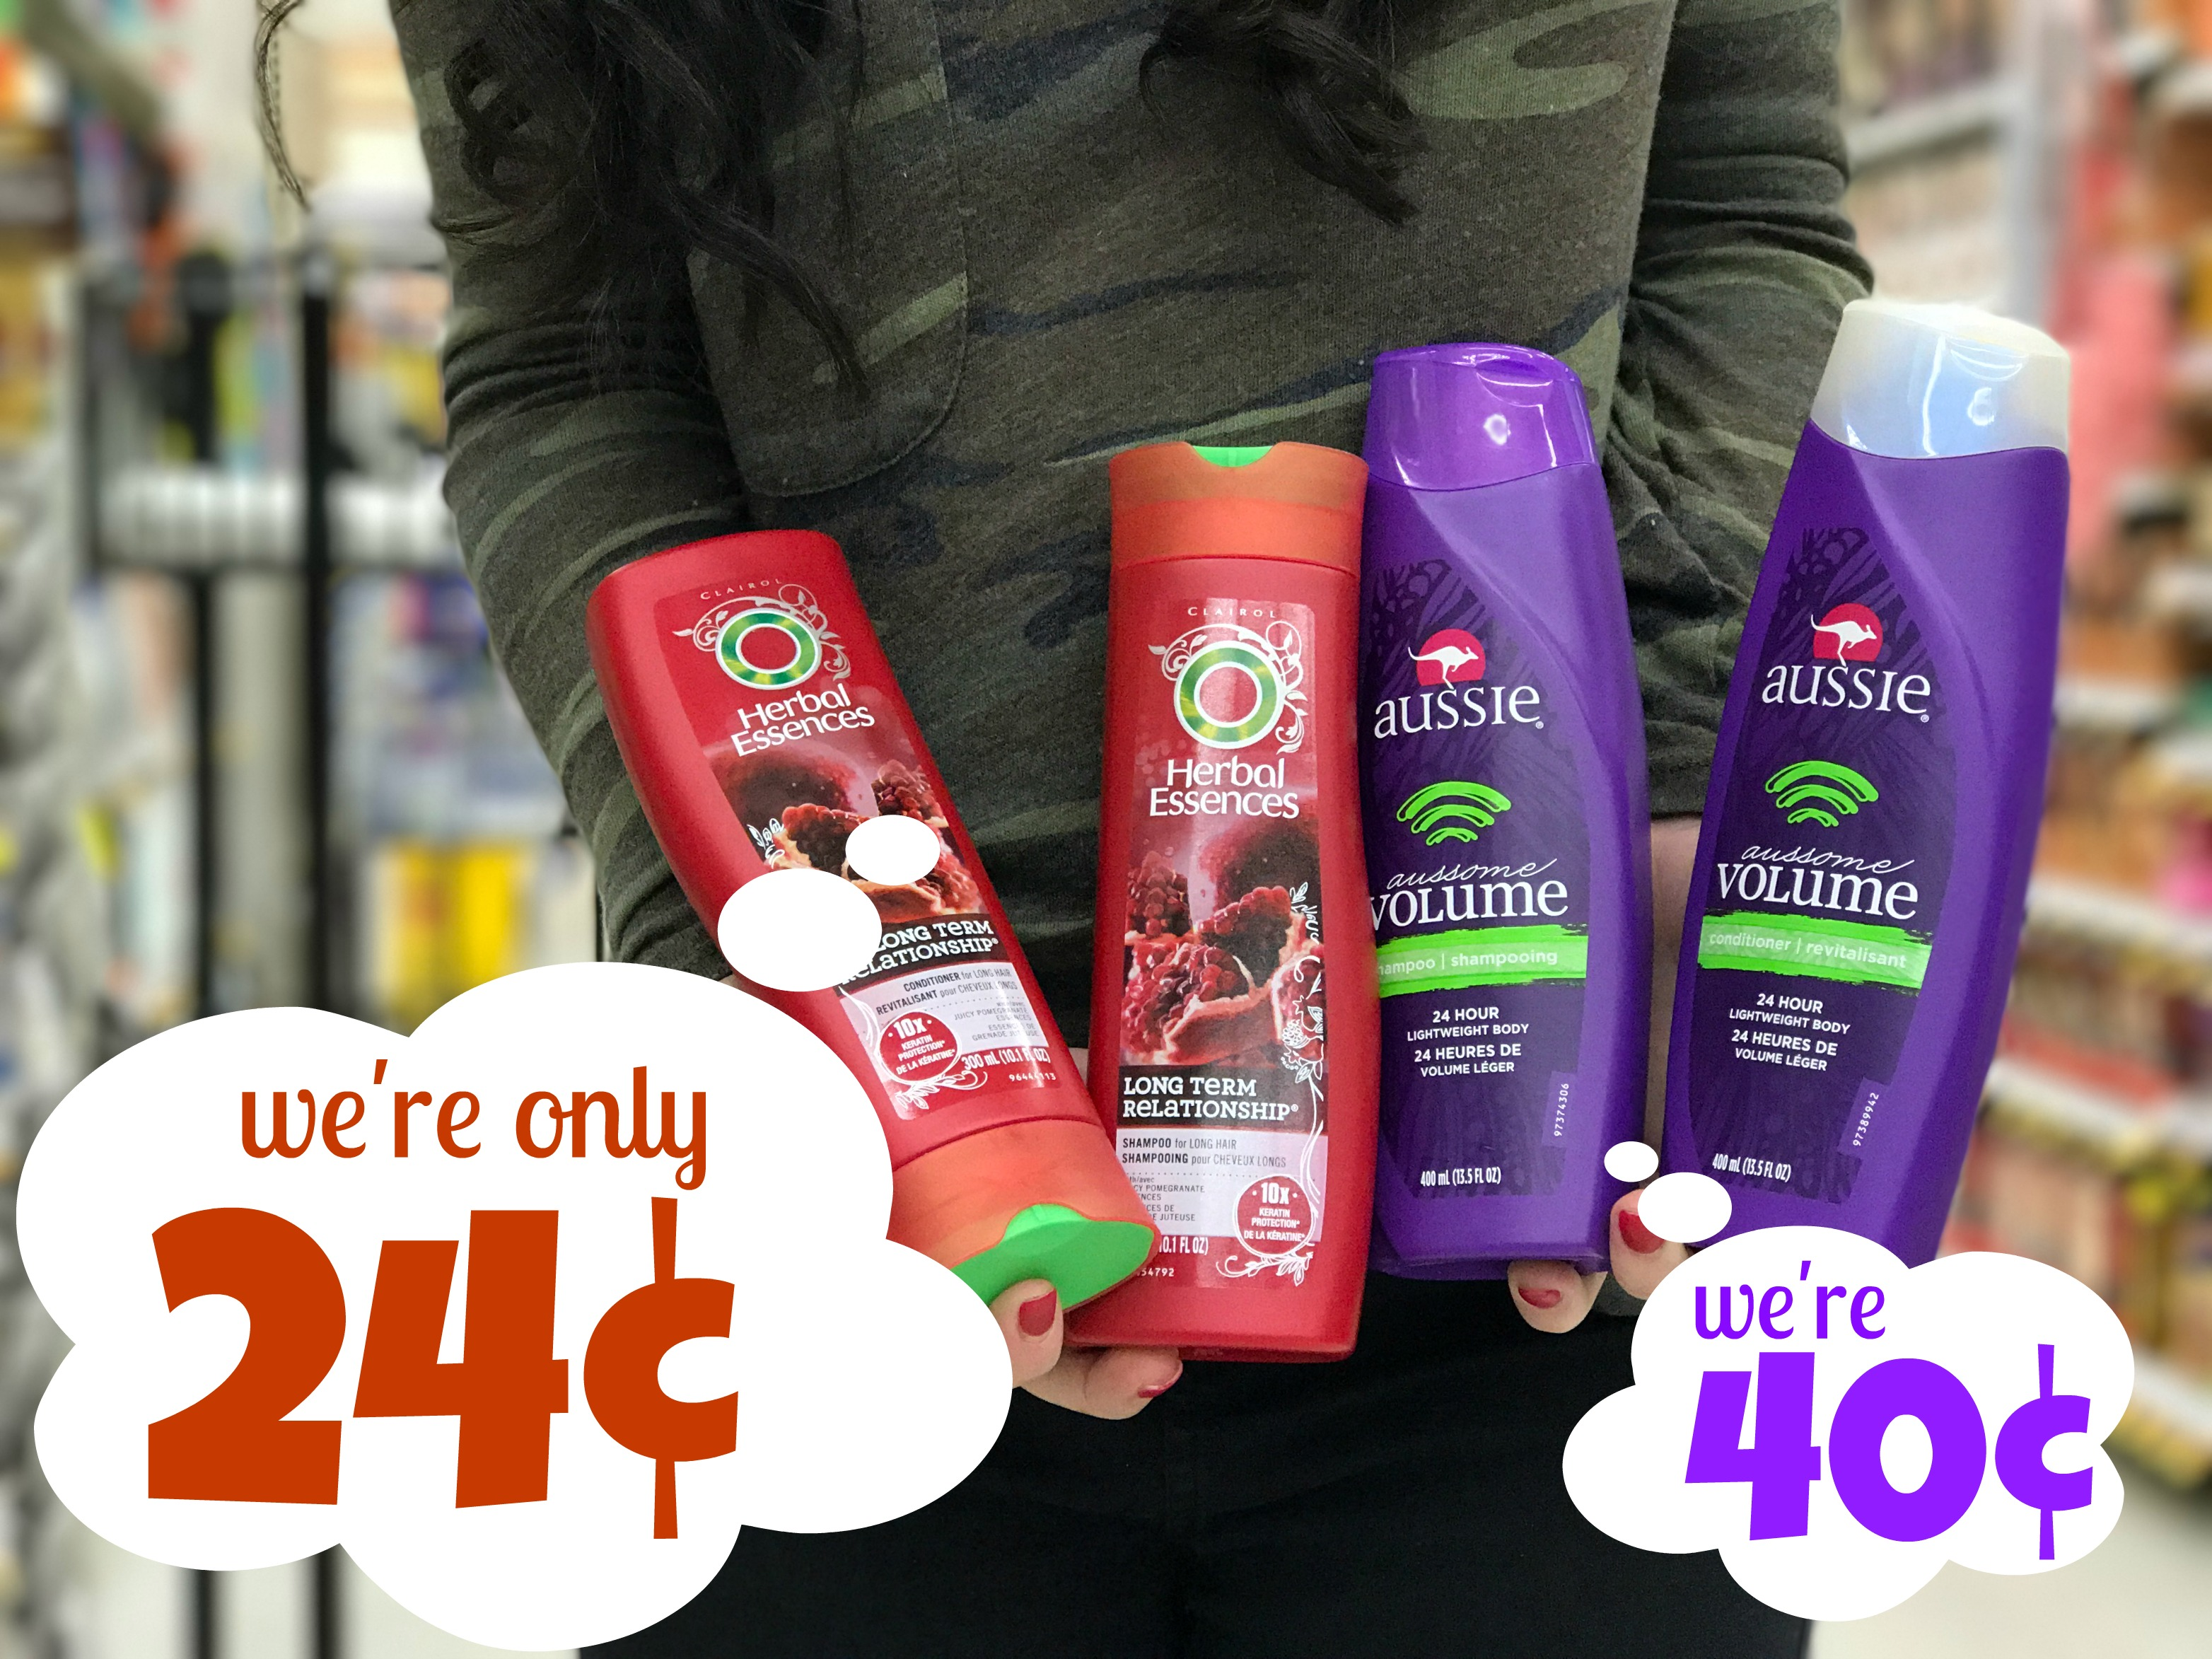 photograph relating to Herbal Essences Coupons Printable titled Organic Essences Hair Treatment Simply $0.24 at Kroger!! Aussie Merely